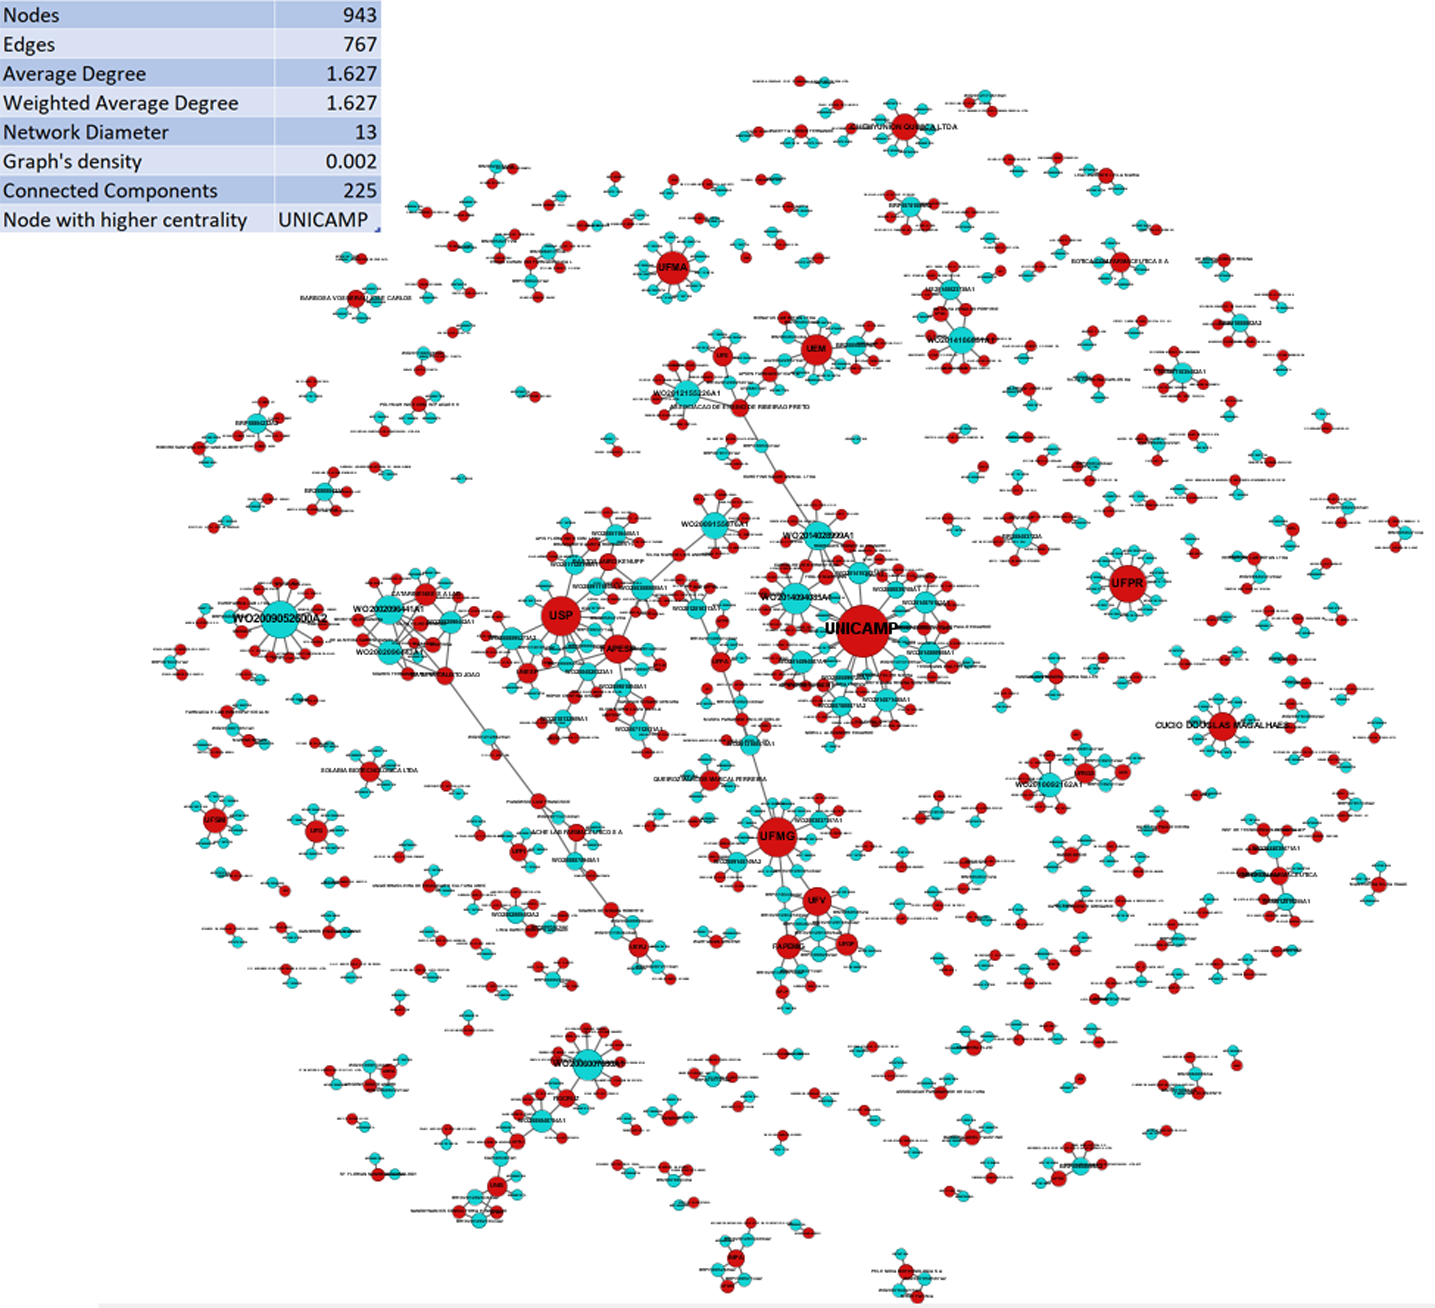 Technological cooperation network in biotechnology: Analysis